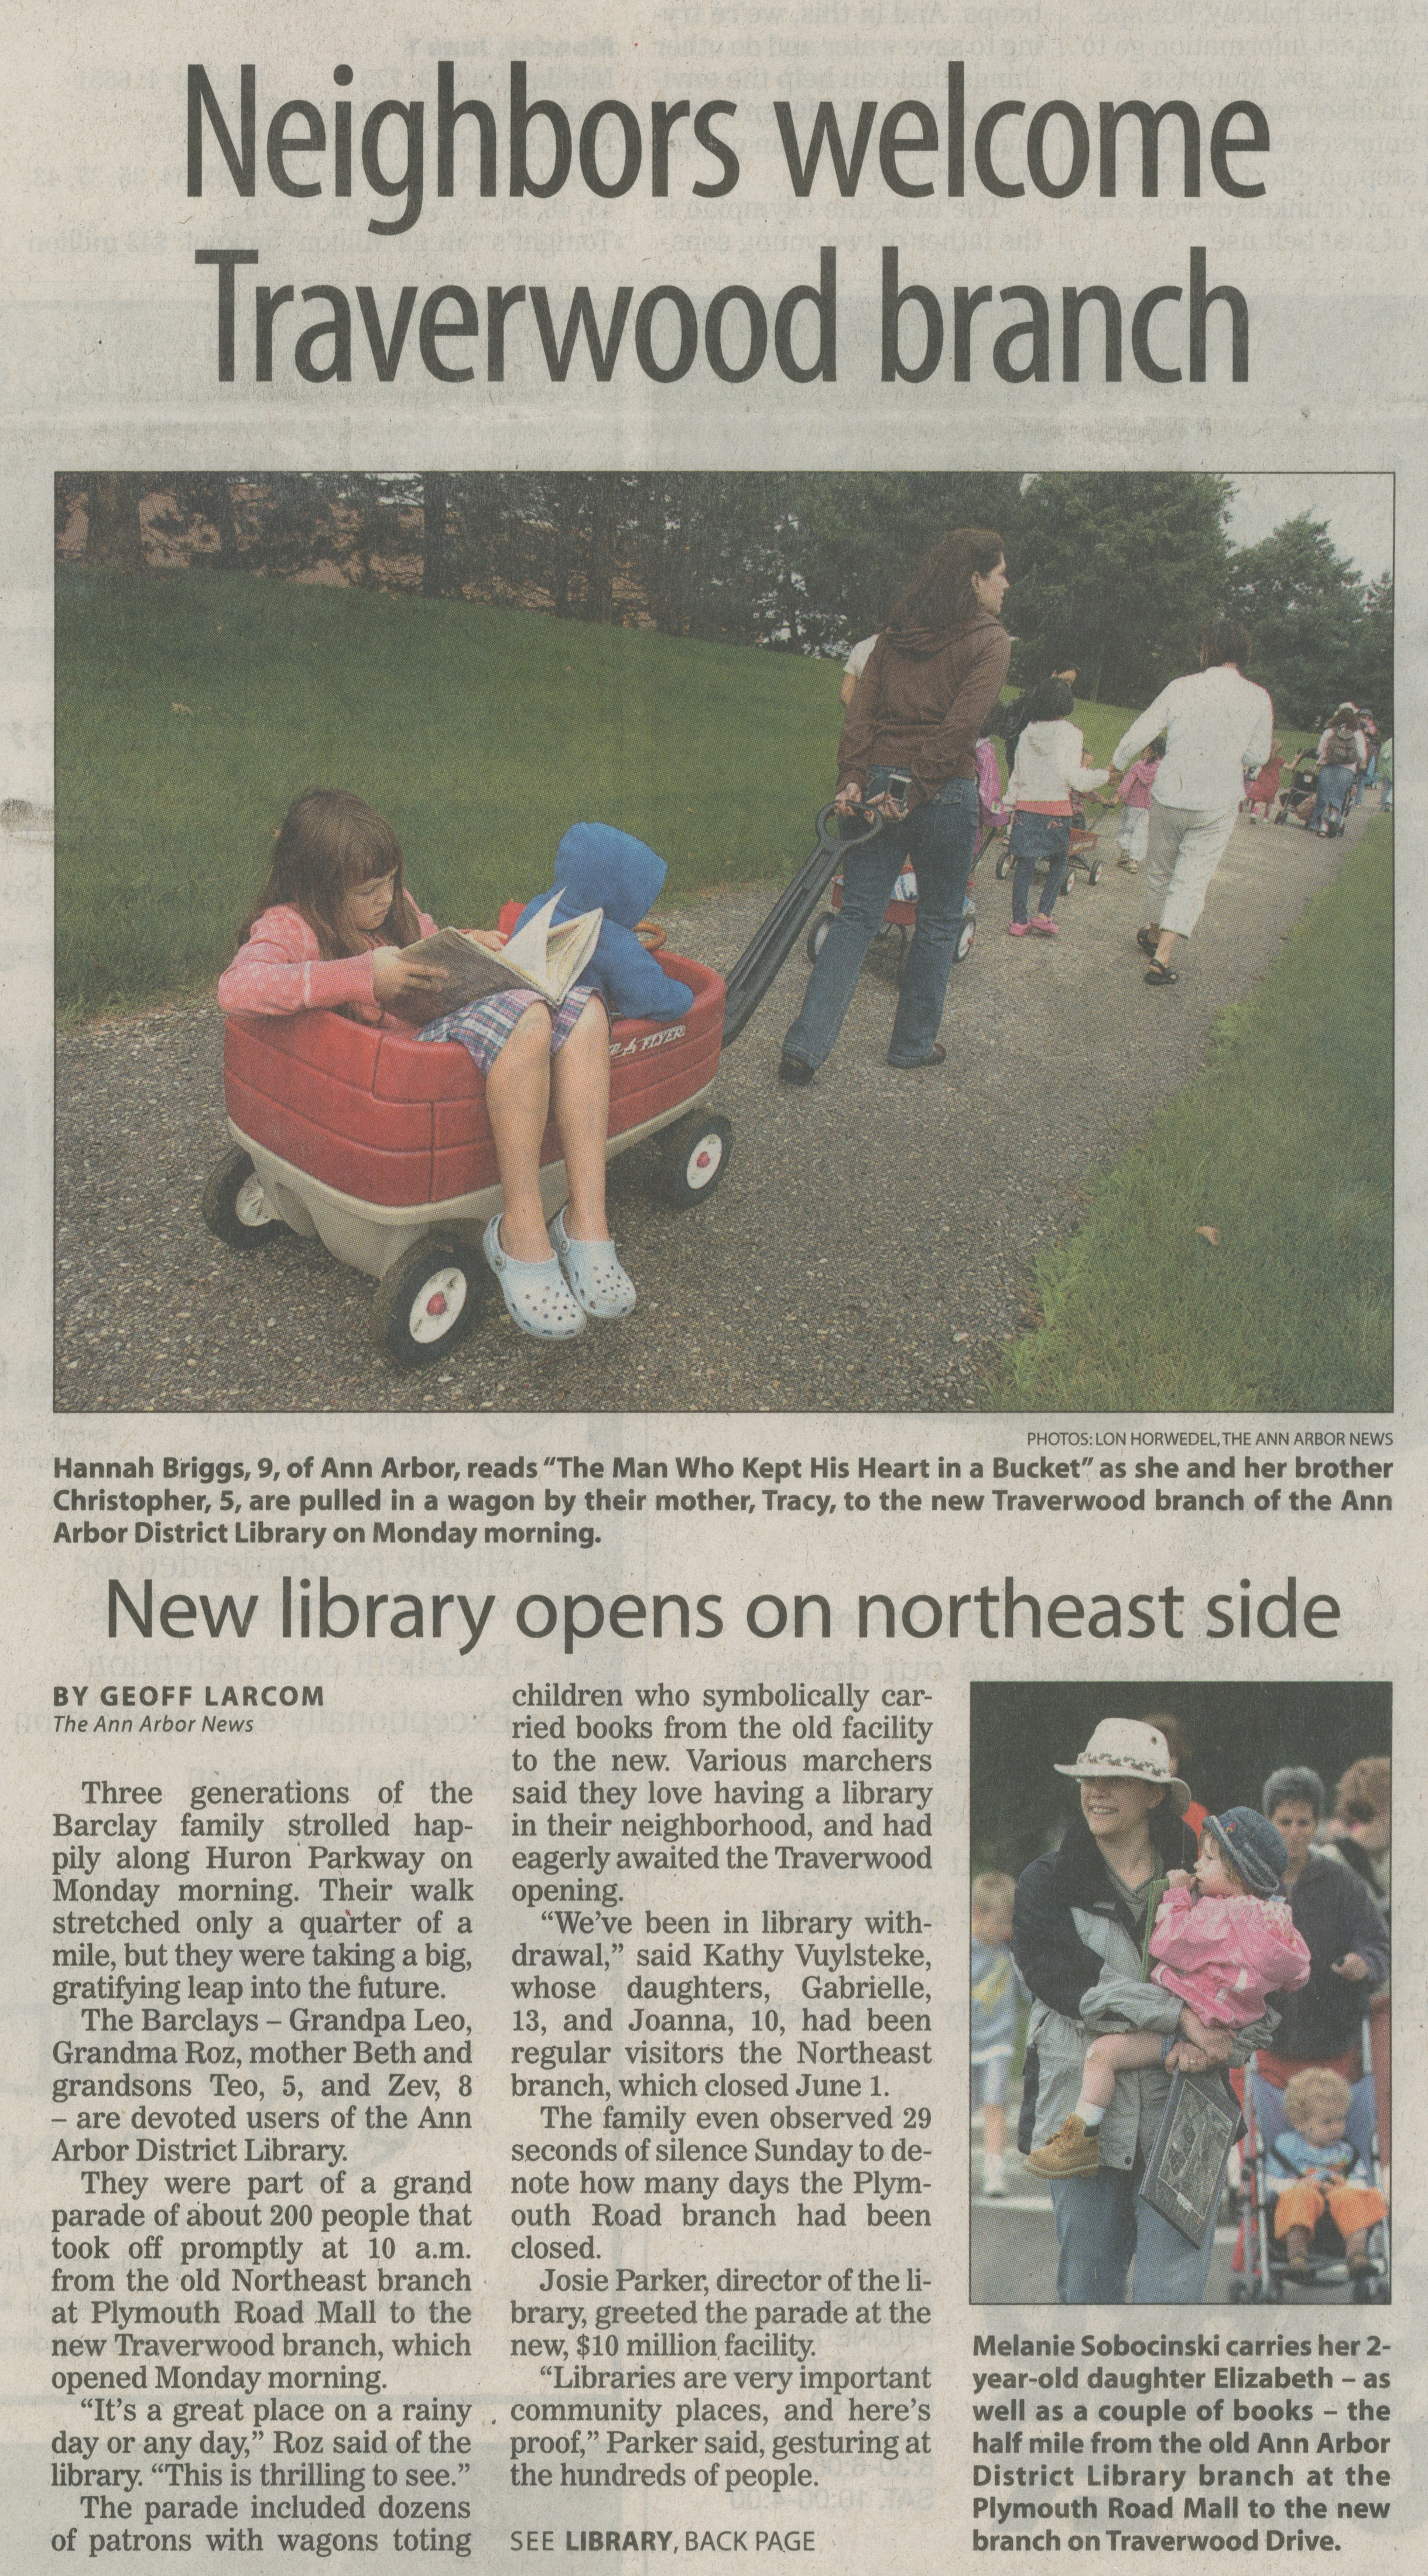 Neighbors Welcome Traverwood Branch - New Library Opens On Northeast Side image